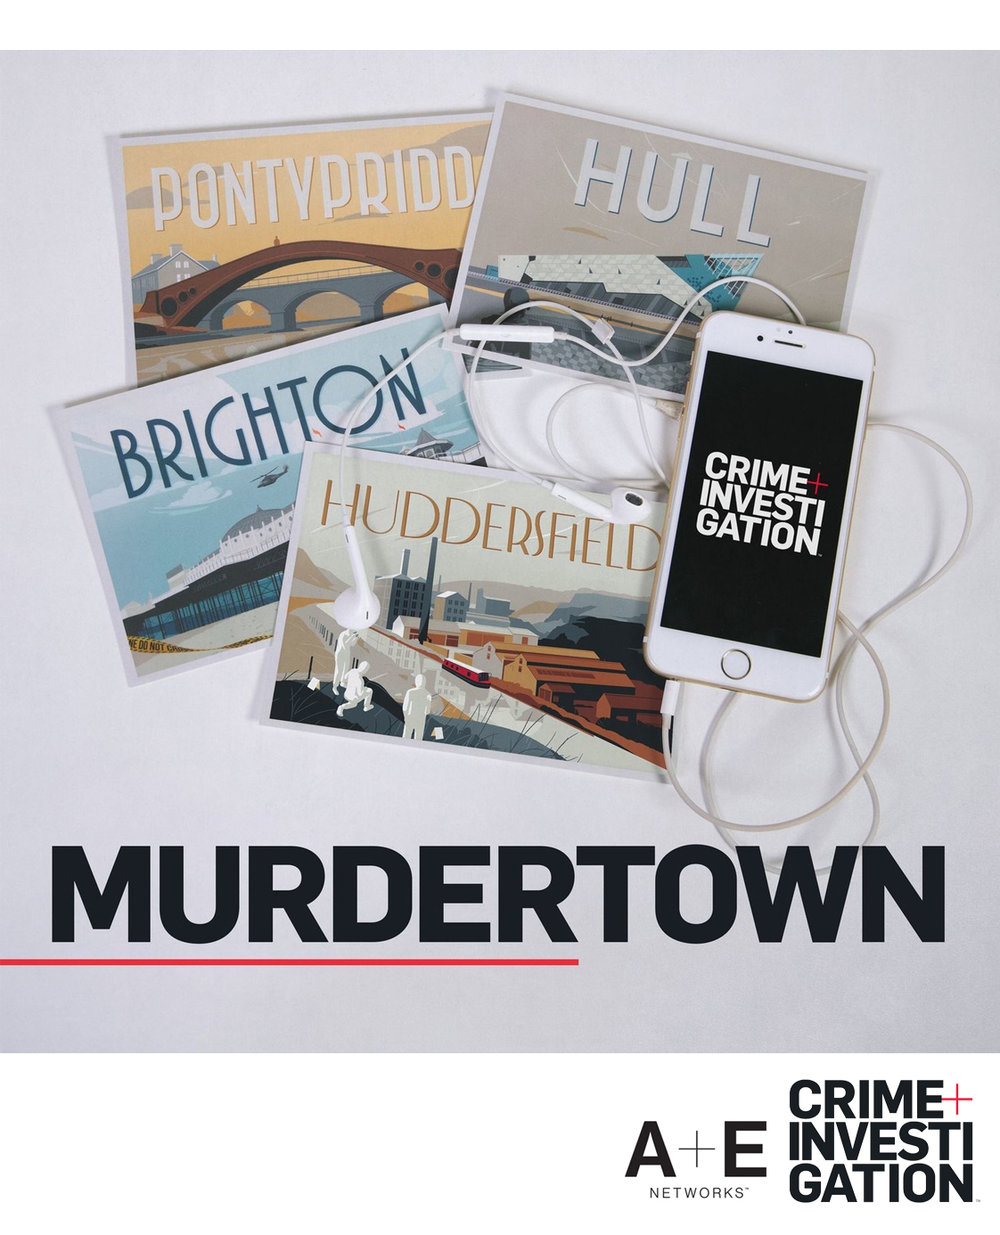 10 Part Scripted Podcast Series - RESEARCH & SCRIPTWRITINGTO RUN ALONGSIDE THE A+E Crime & Investigation TV SERIES 'MURDERTOWN'